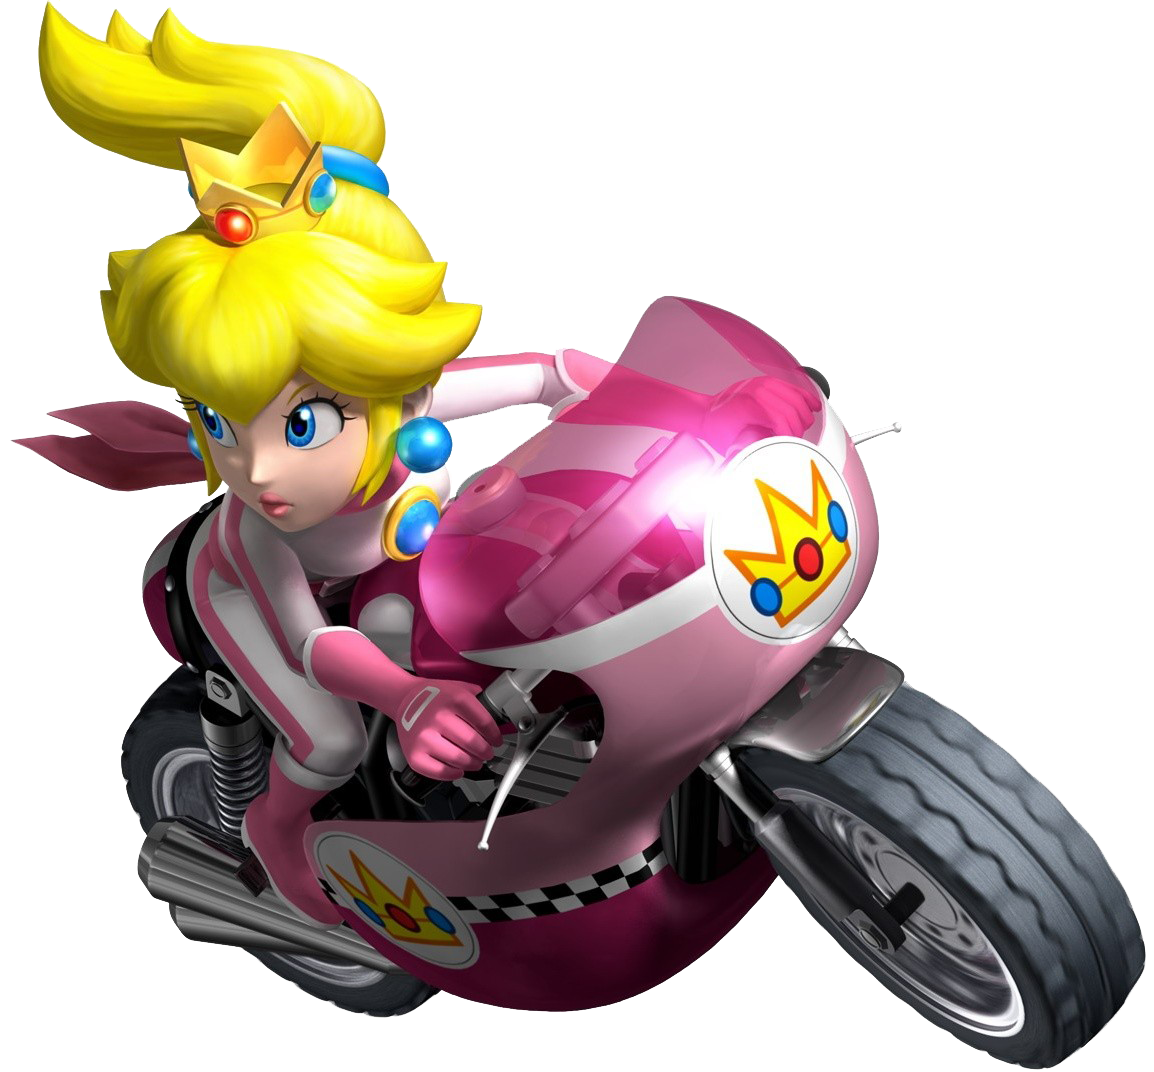 princess peach the mario kart racing wiki mario kart. Black Bedroom Furniture Sets. Home Design Ideas